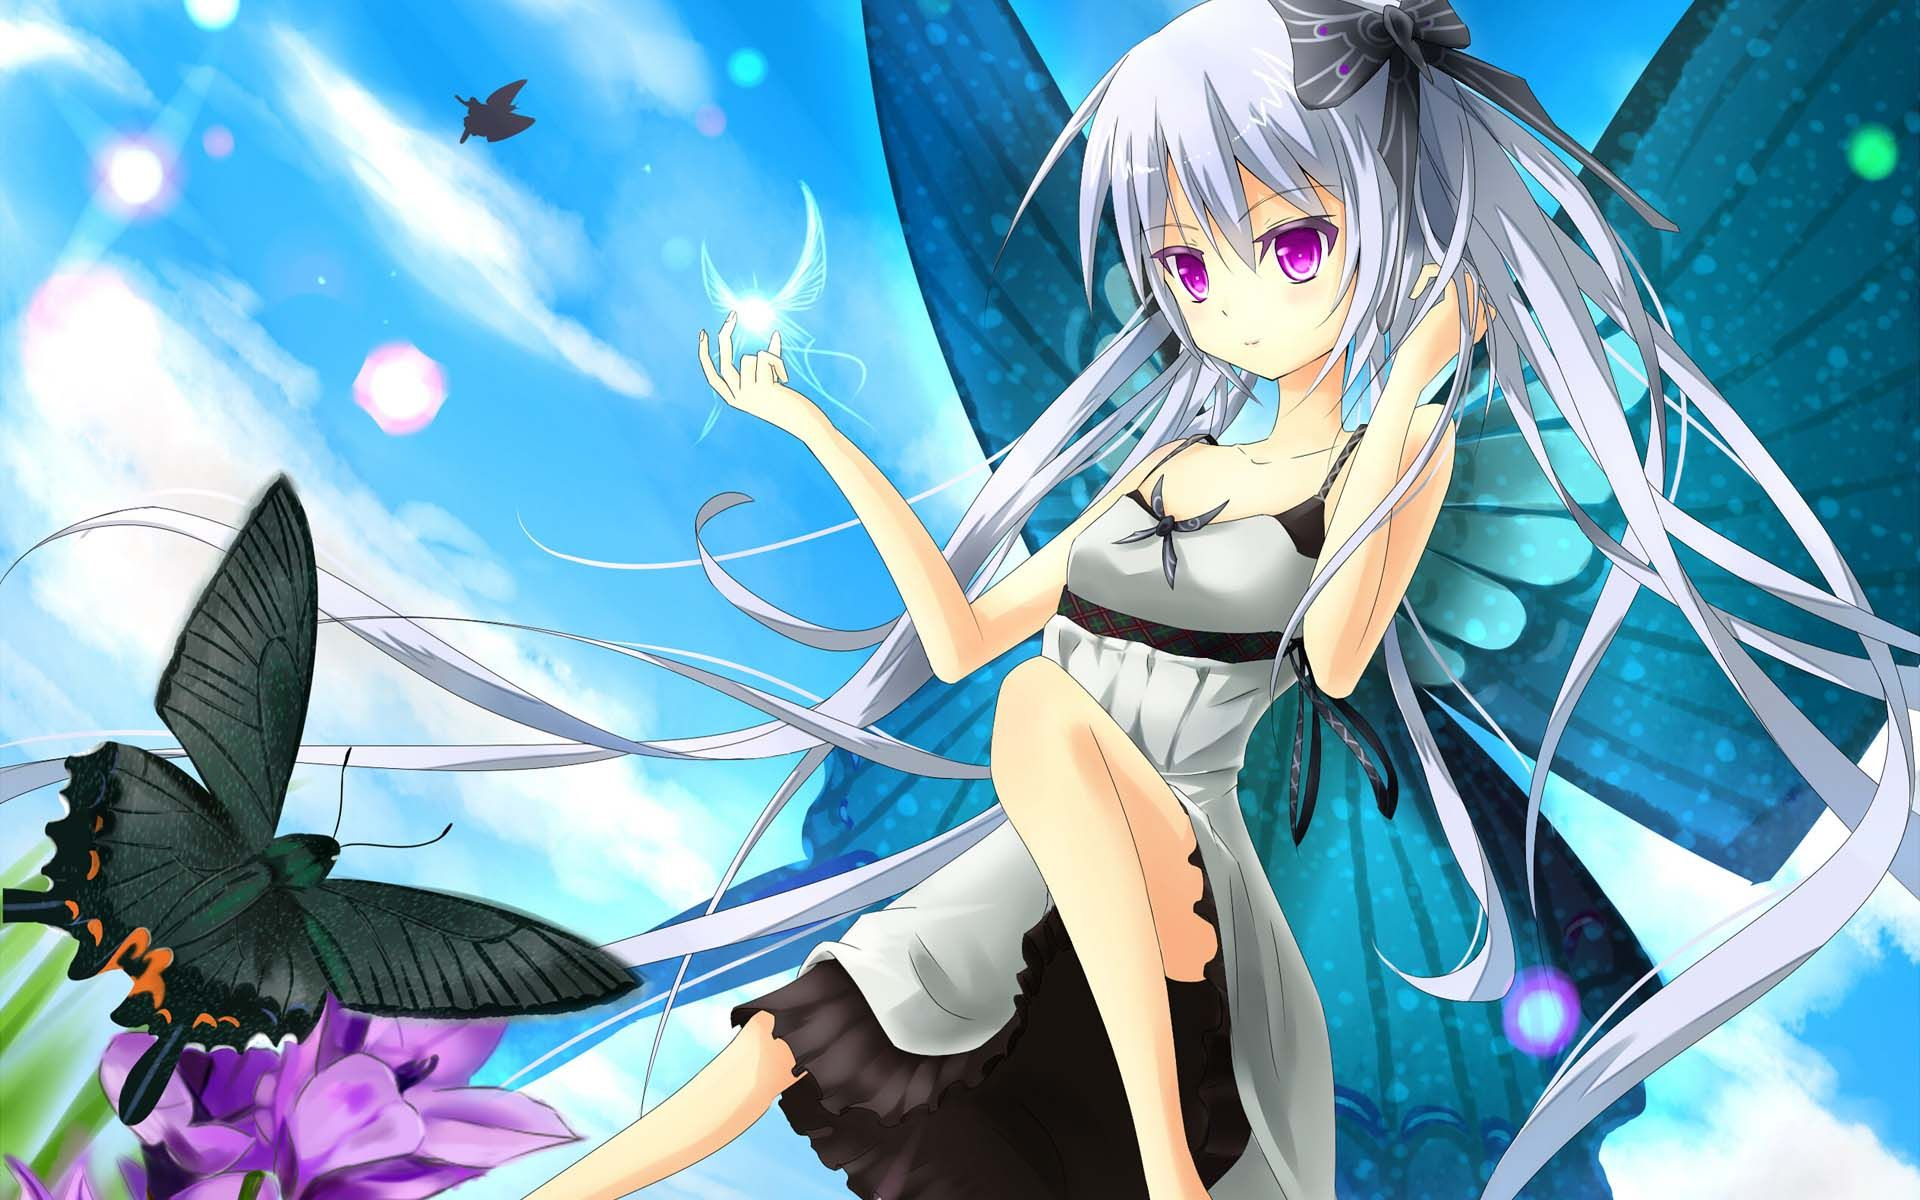 Girl Playing With A Butterfly - Anime Girl With Fairy Wings , HD Wallpaper & Backgrounds